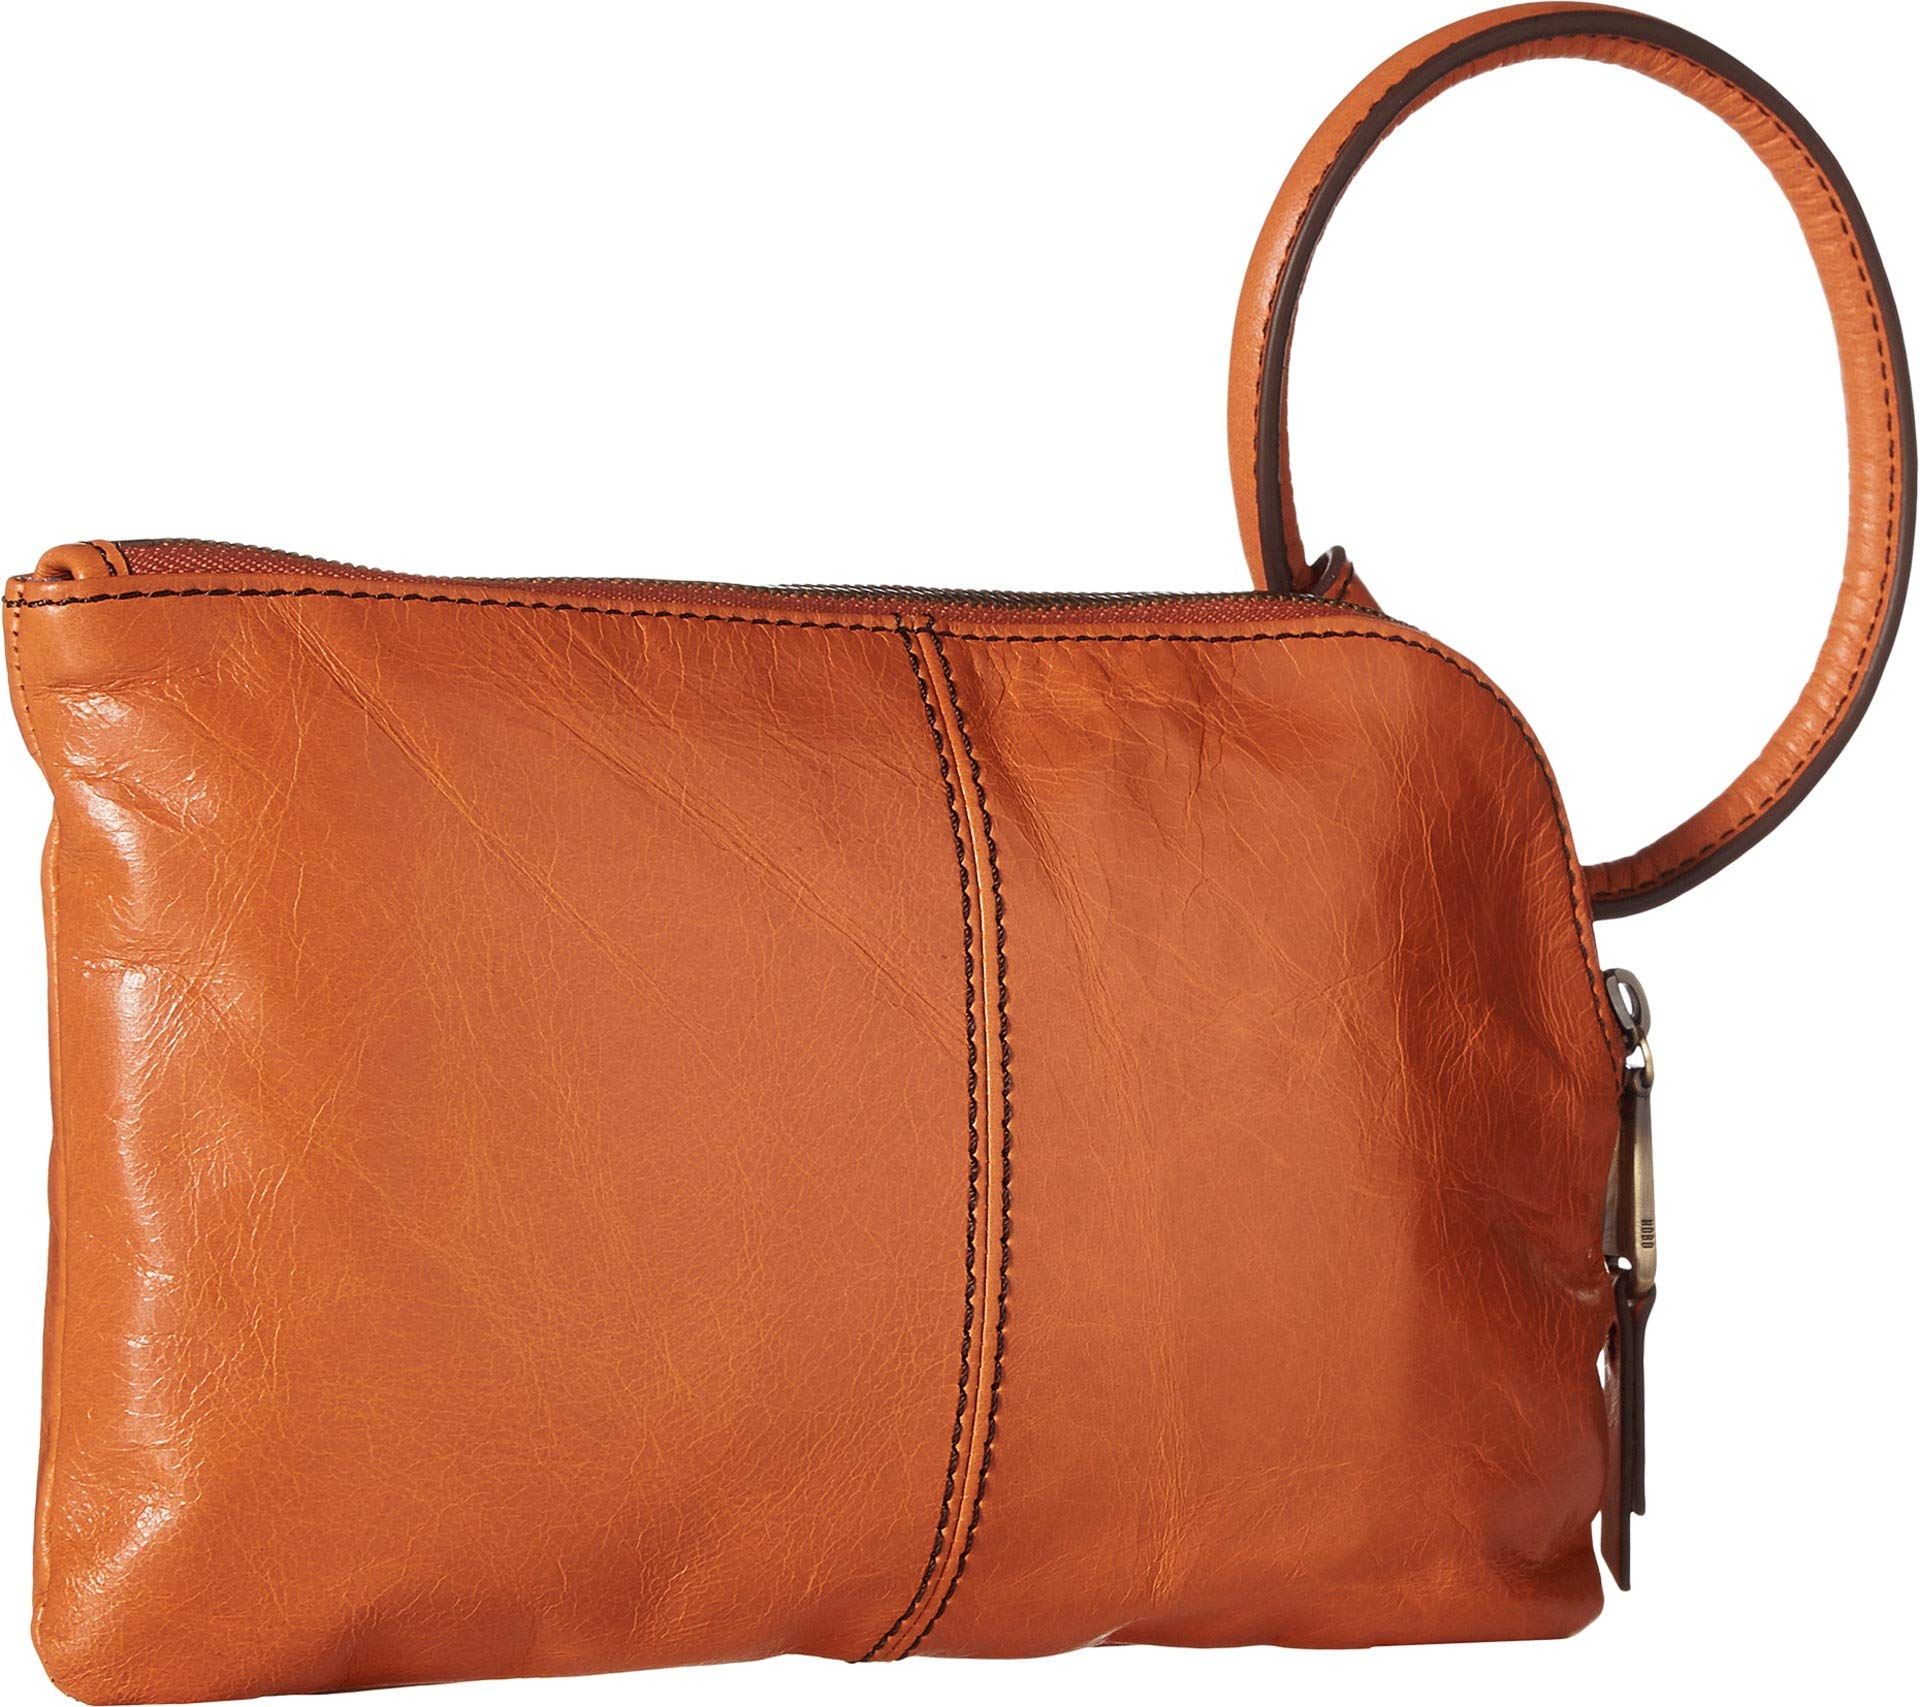 Hobo Women's Leather Sable Wristlet Clutch Wallet (Dusty Coral) by HOBO (Image #2)